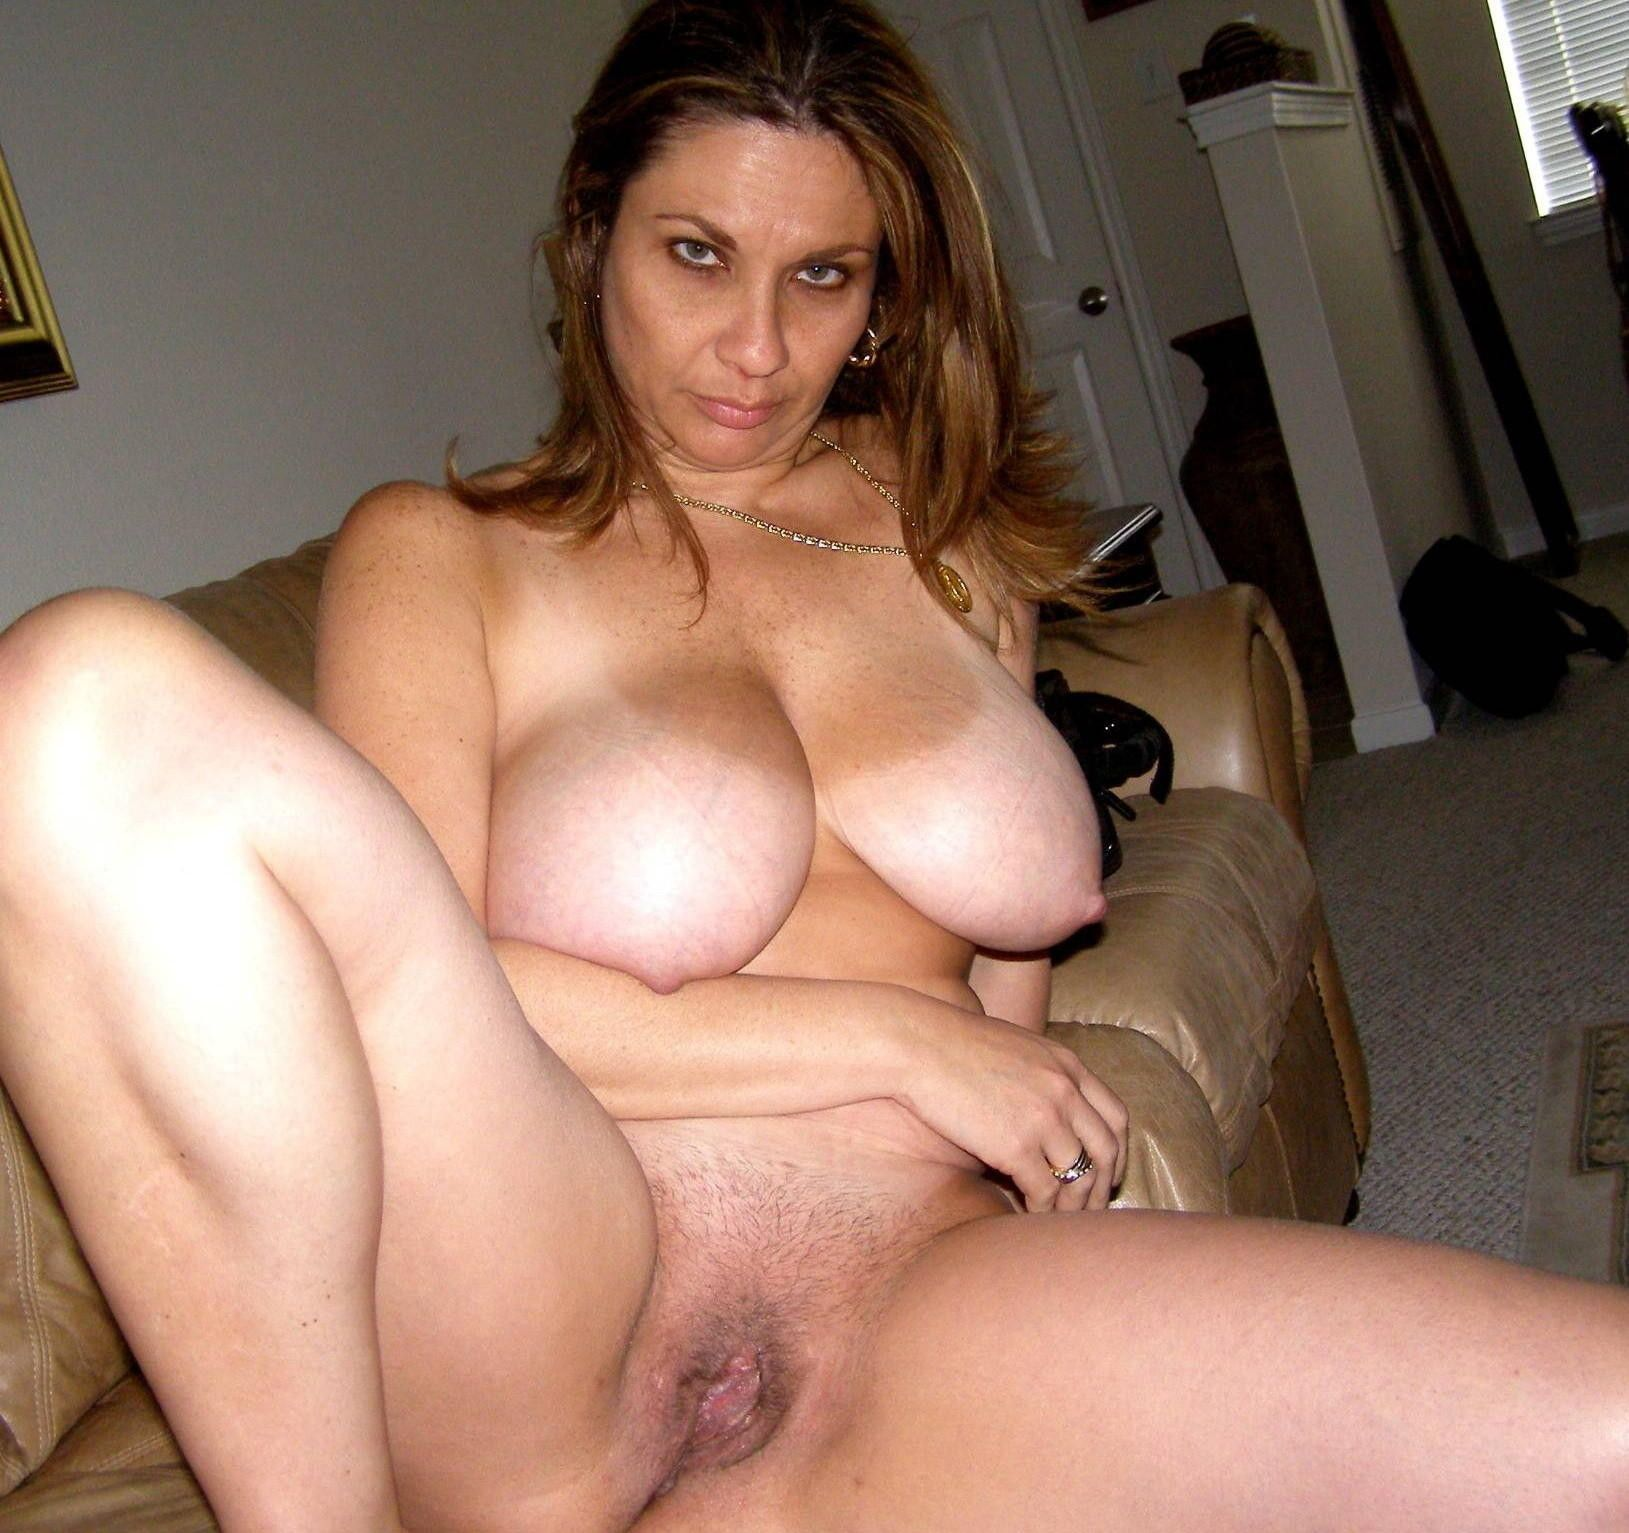 Grannies shaved pussy vids . Photos and other amusements.